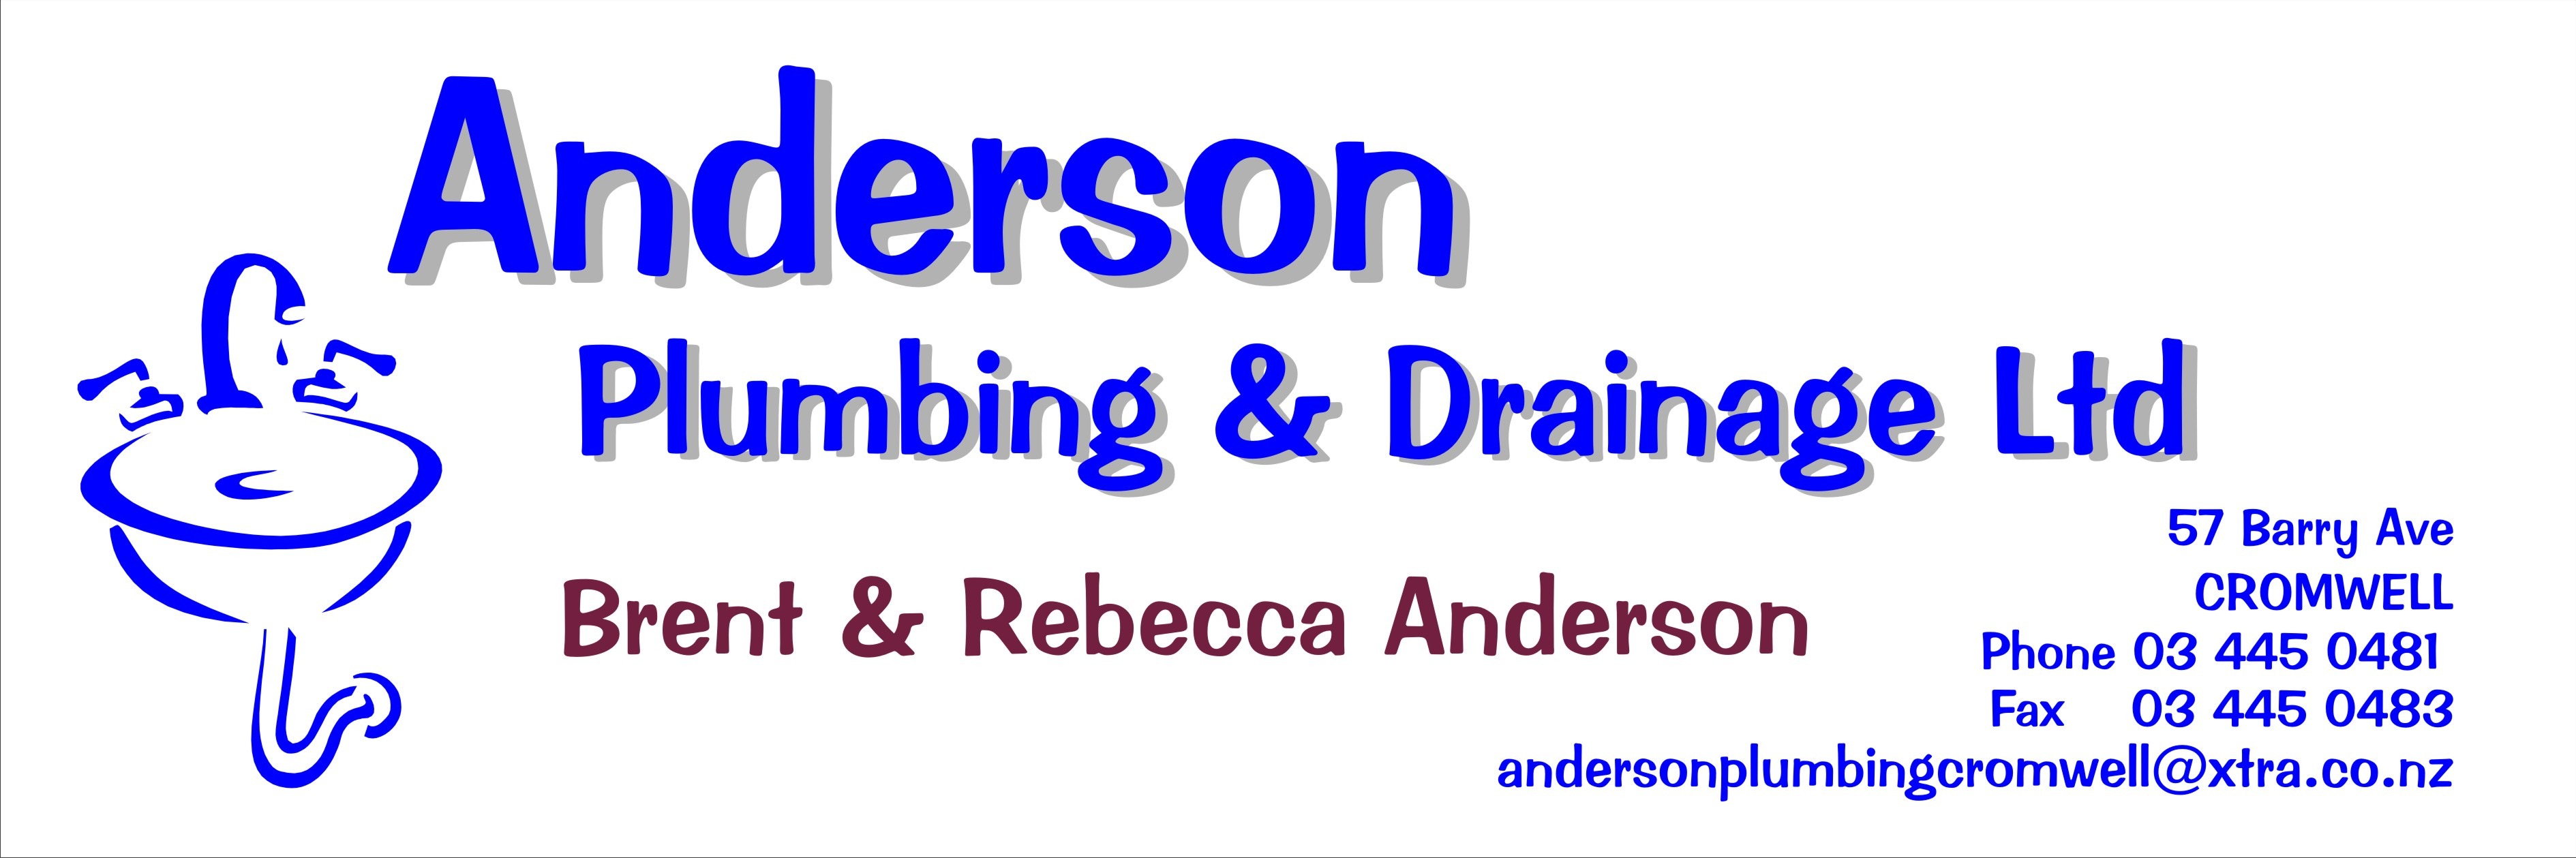 Anderson Plumbing and Drainage